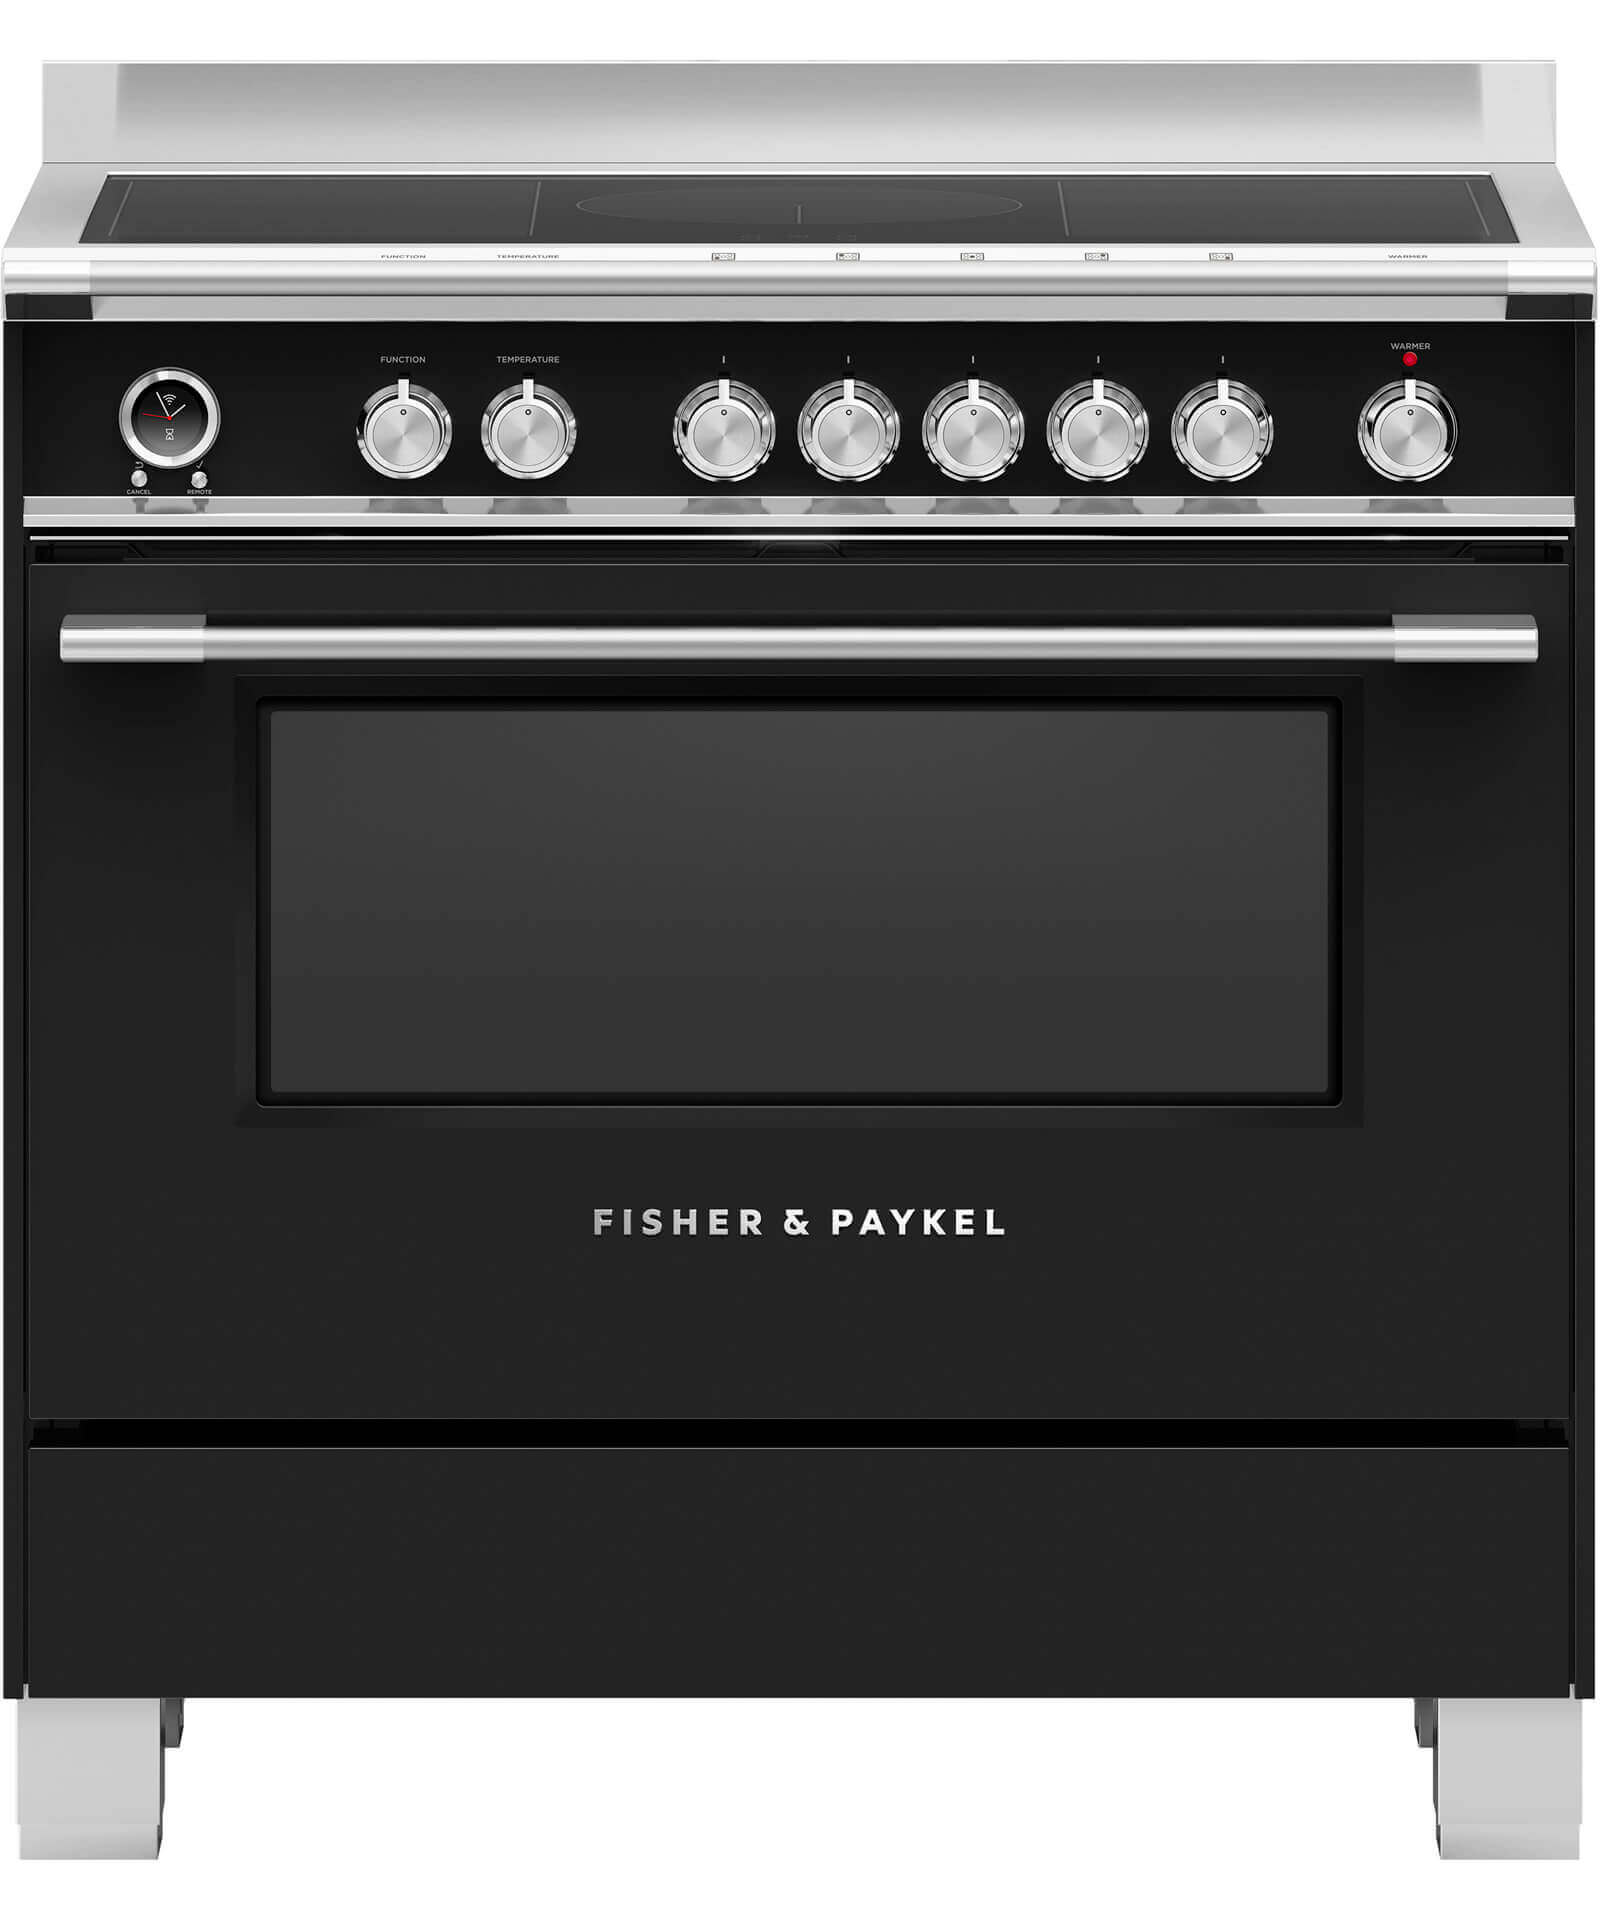 OR90SCI6B1 - 90cm Freestanding Induction Range Cooker - 81694